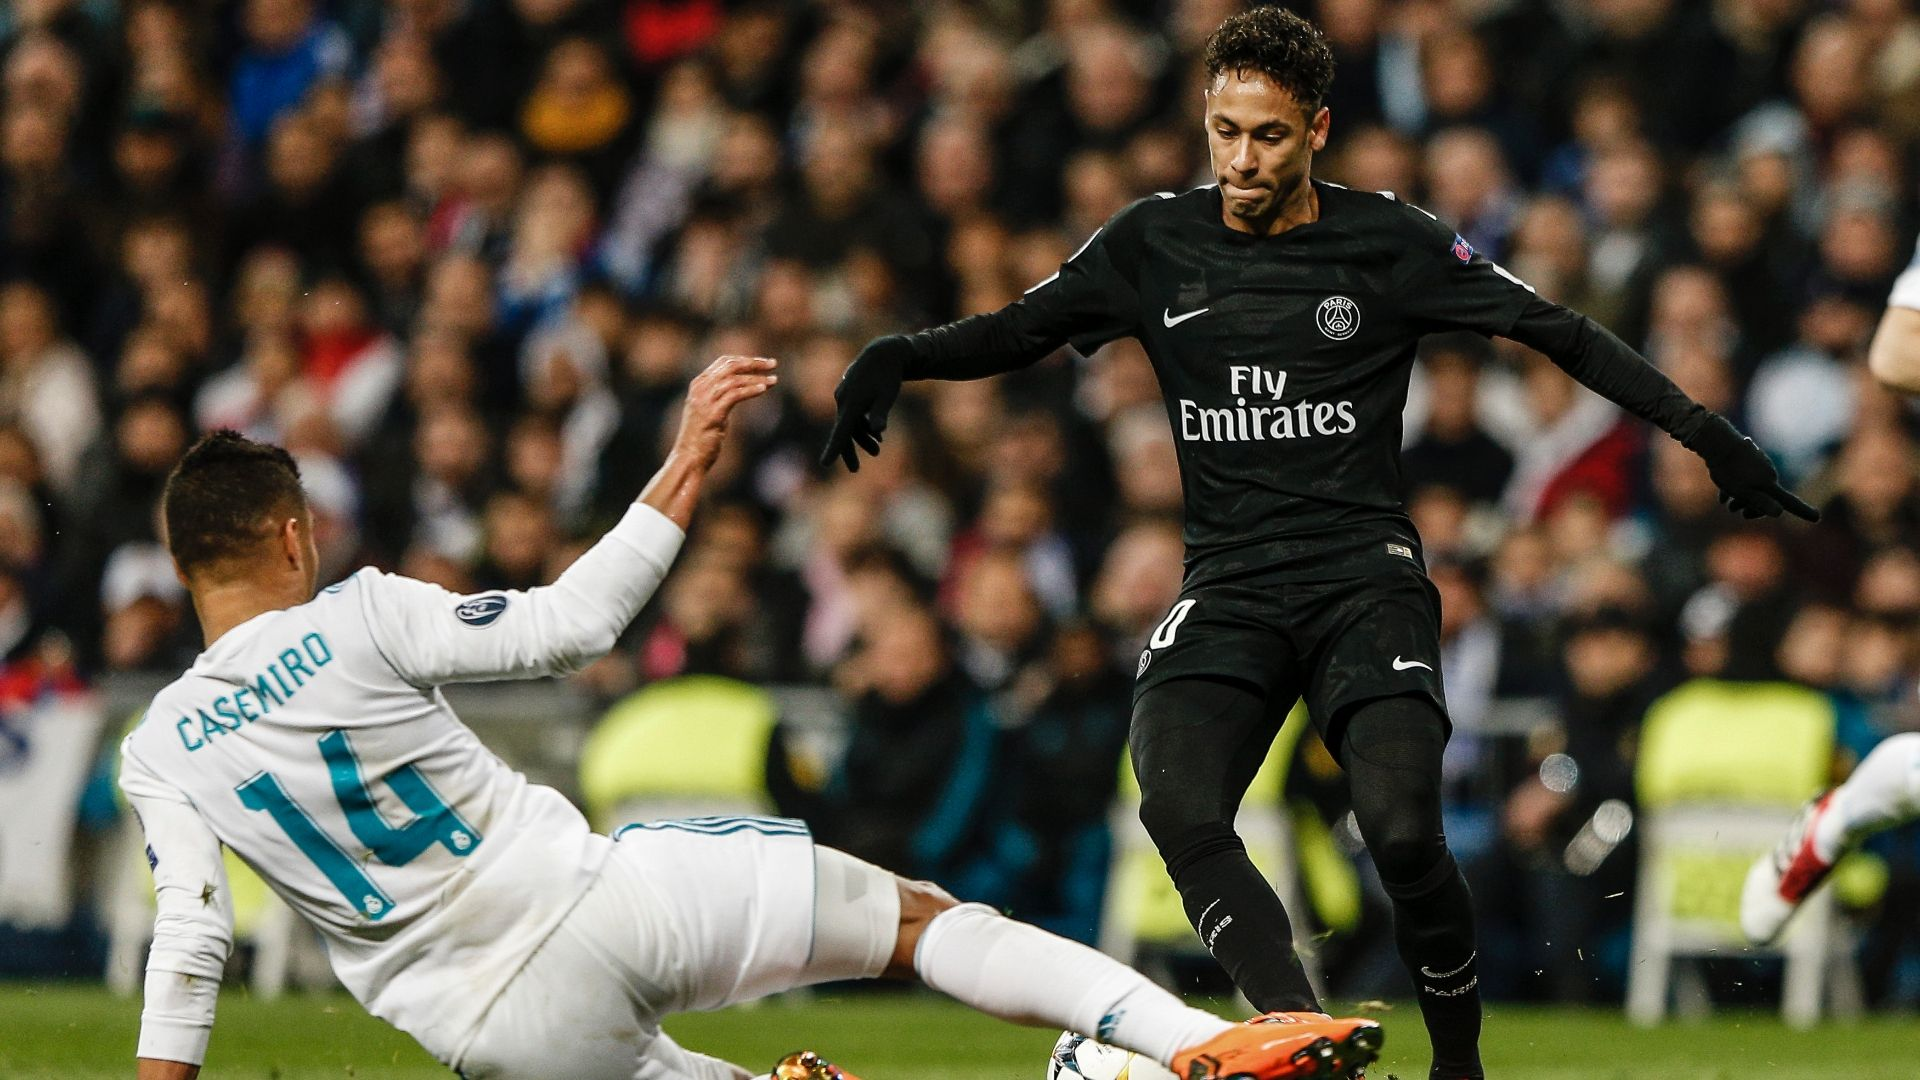 What went wrong for PSG at Real Madrid  - Ghanasoccernet News c20114766e60a